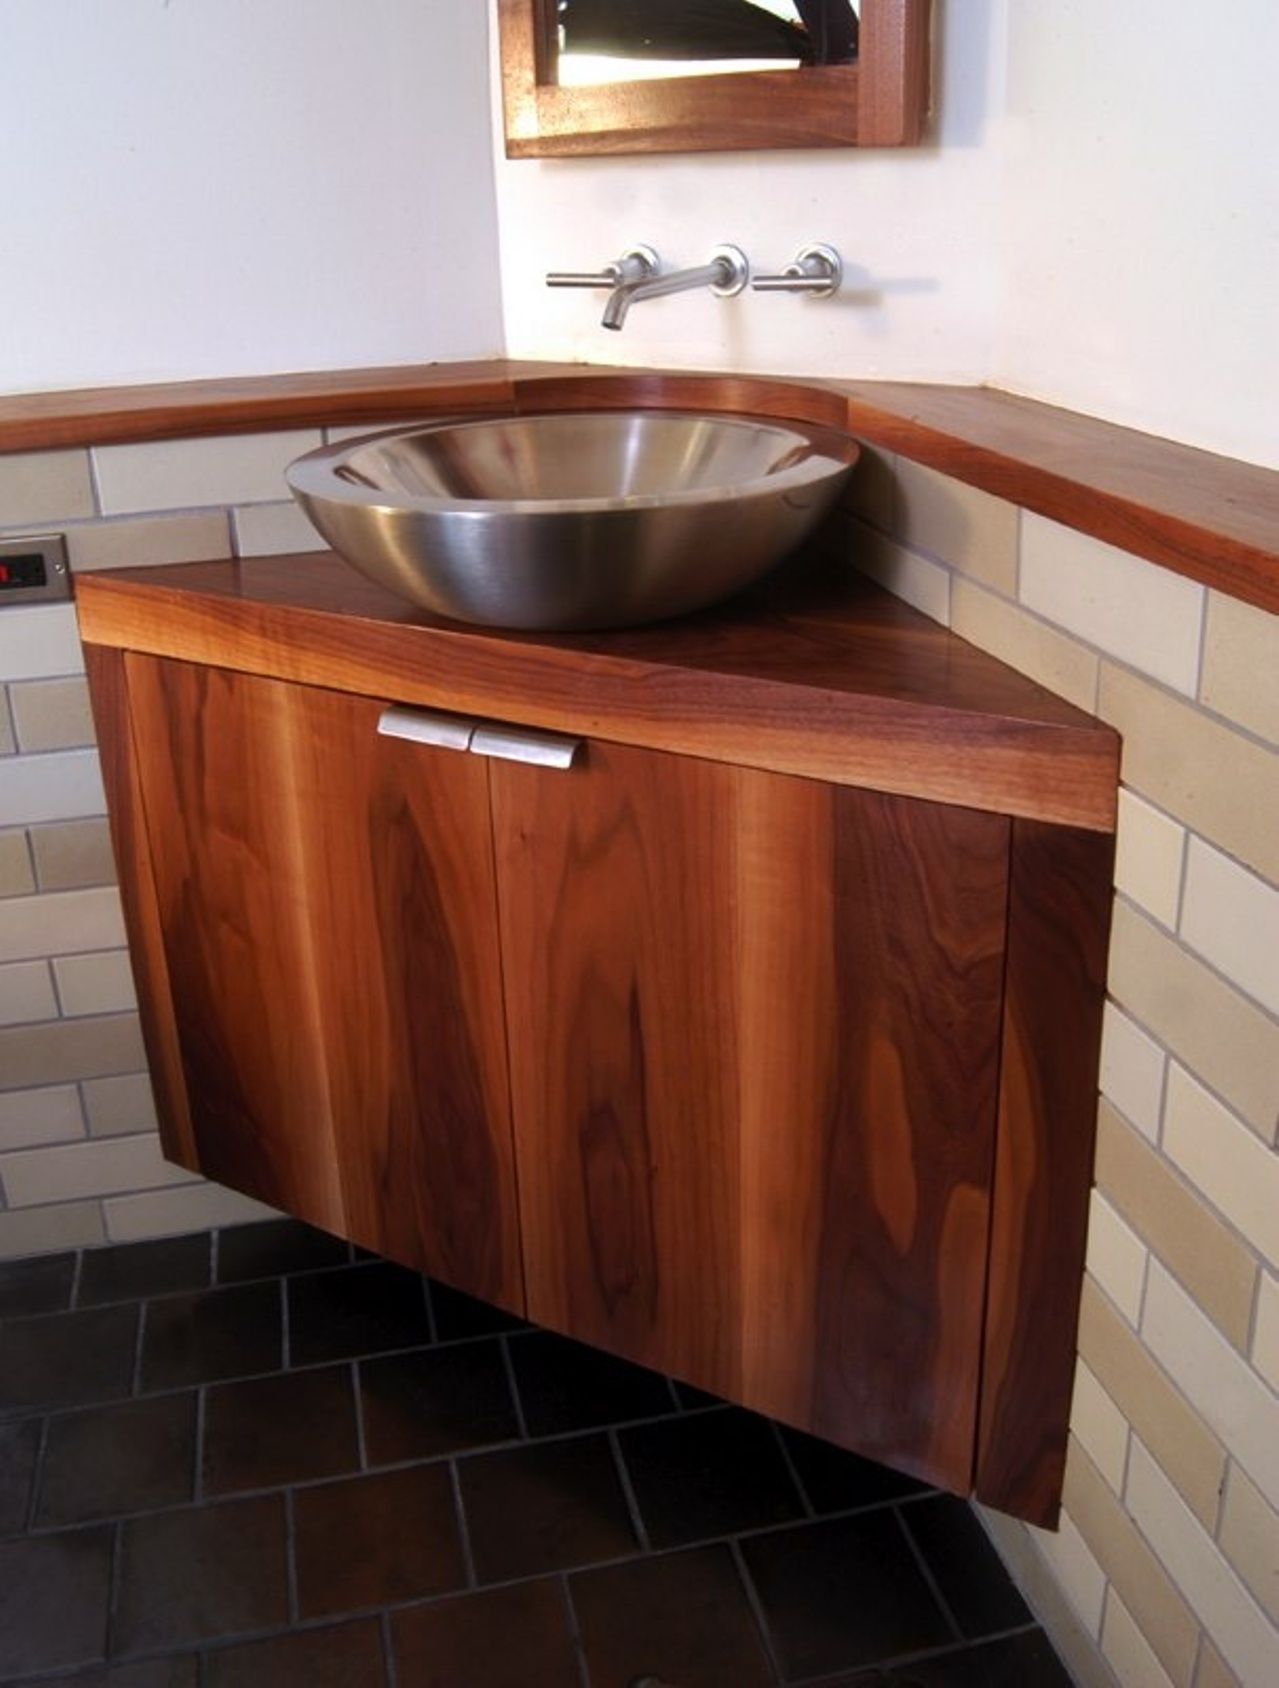 Awesome-brown-wood-corner-bathroom-vanity-with-silver-vessel-sink